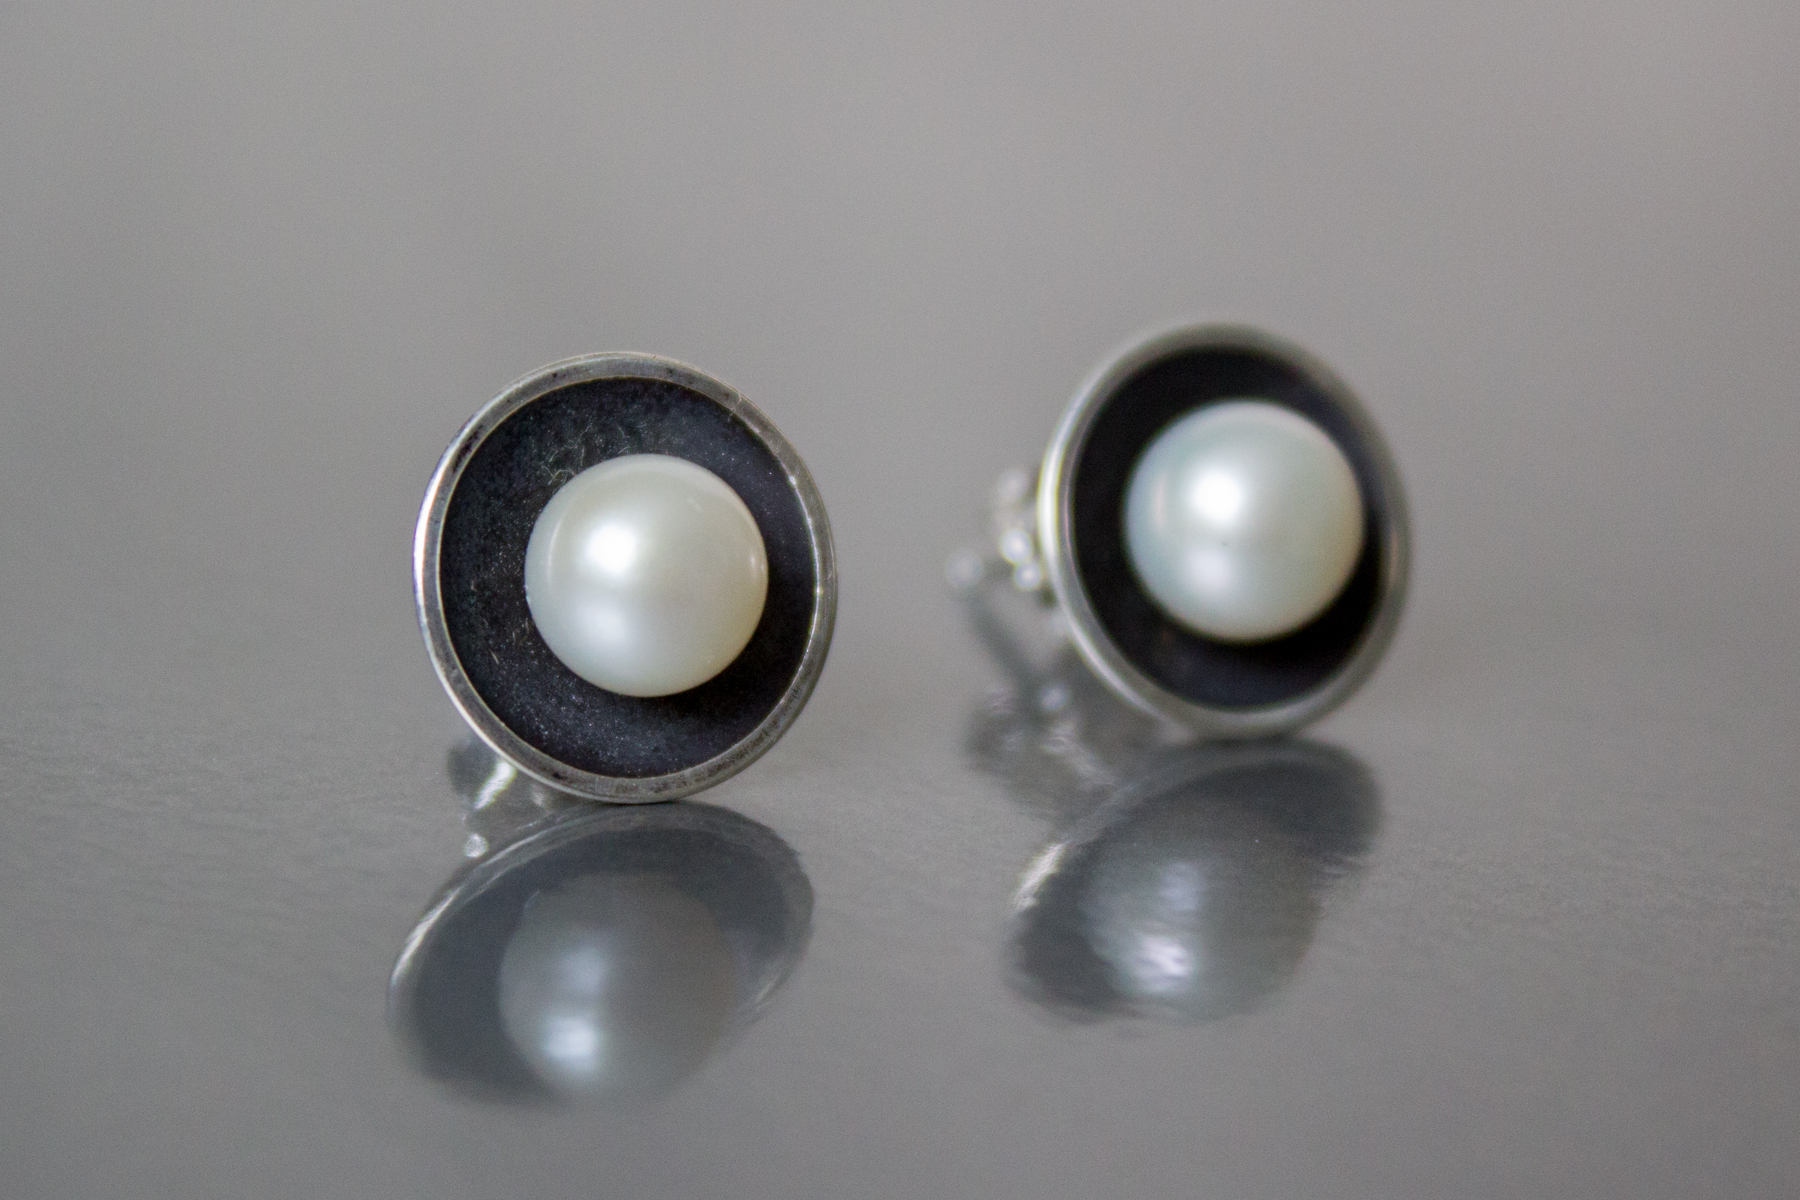 white dp com button sterling for pearl cultured studs earrings amazon jewelry silver stud girls freshwater